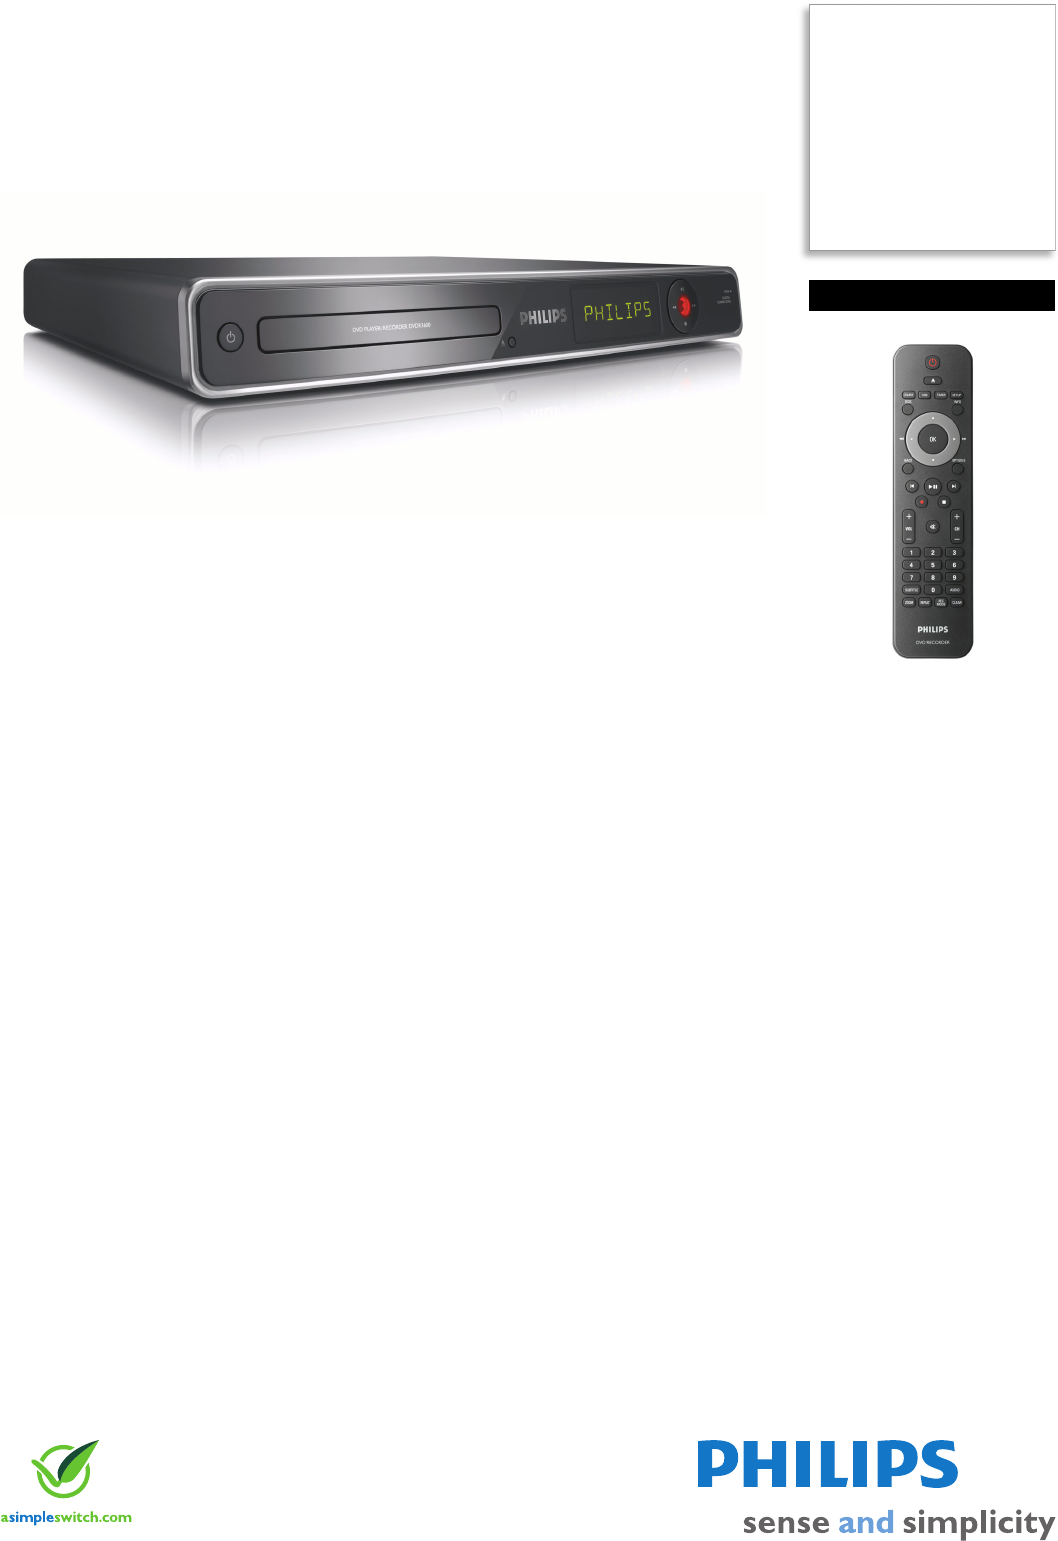 philips portable dvd player manual